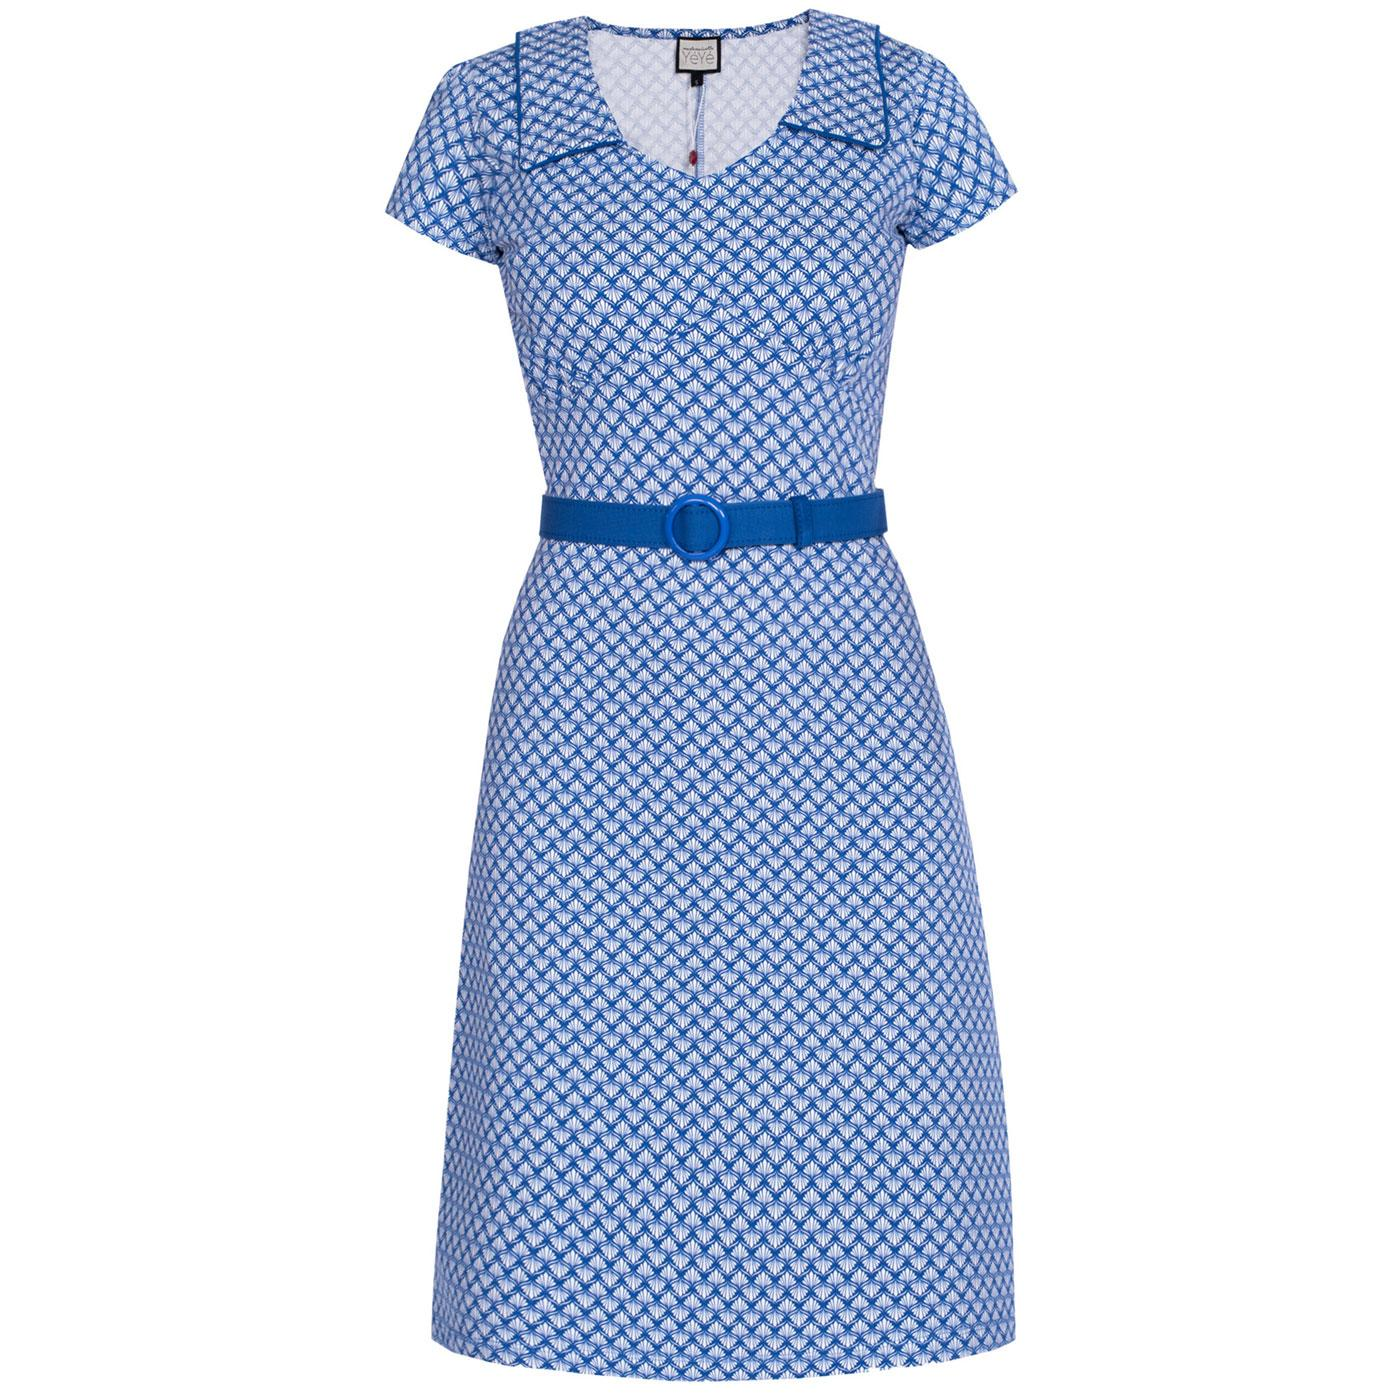 Vintage Moments MADEMOISELLE YEYE Retro Mod Dress